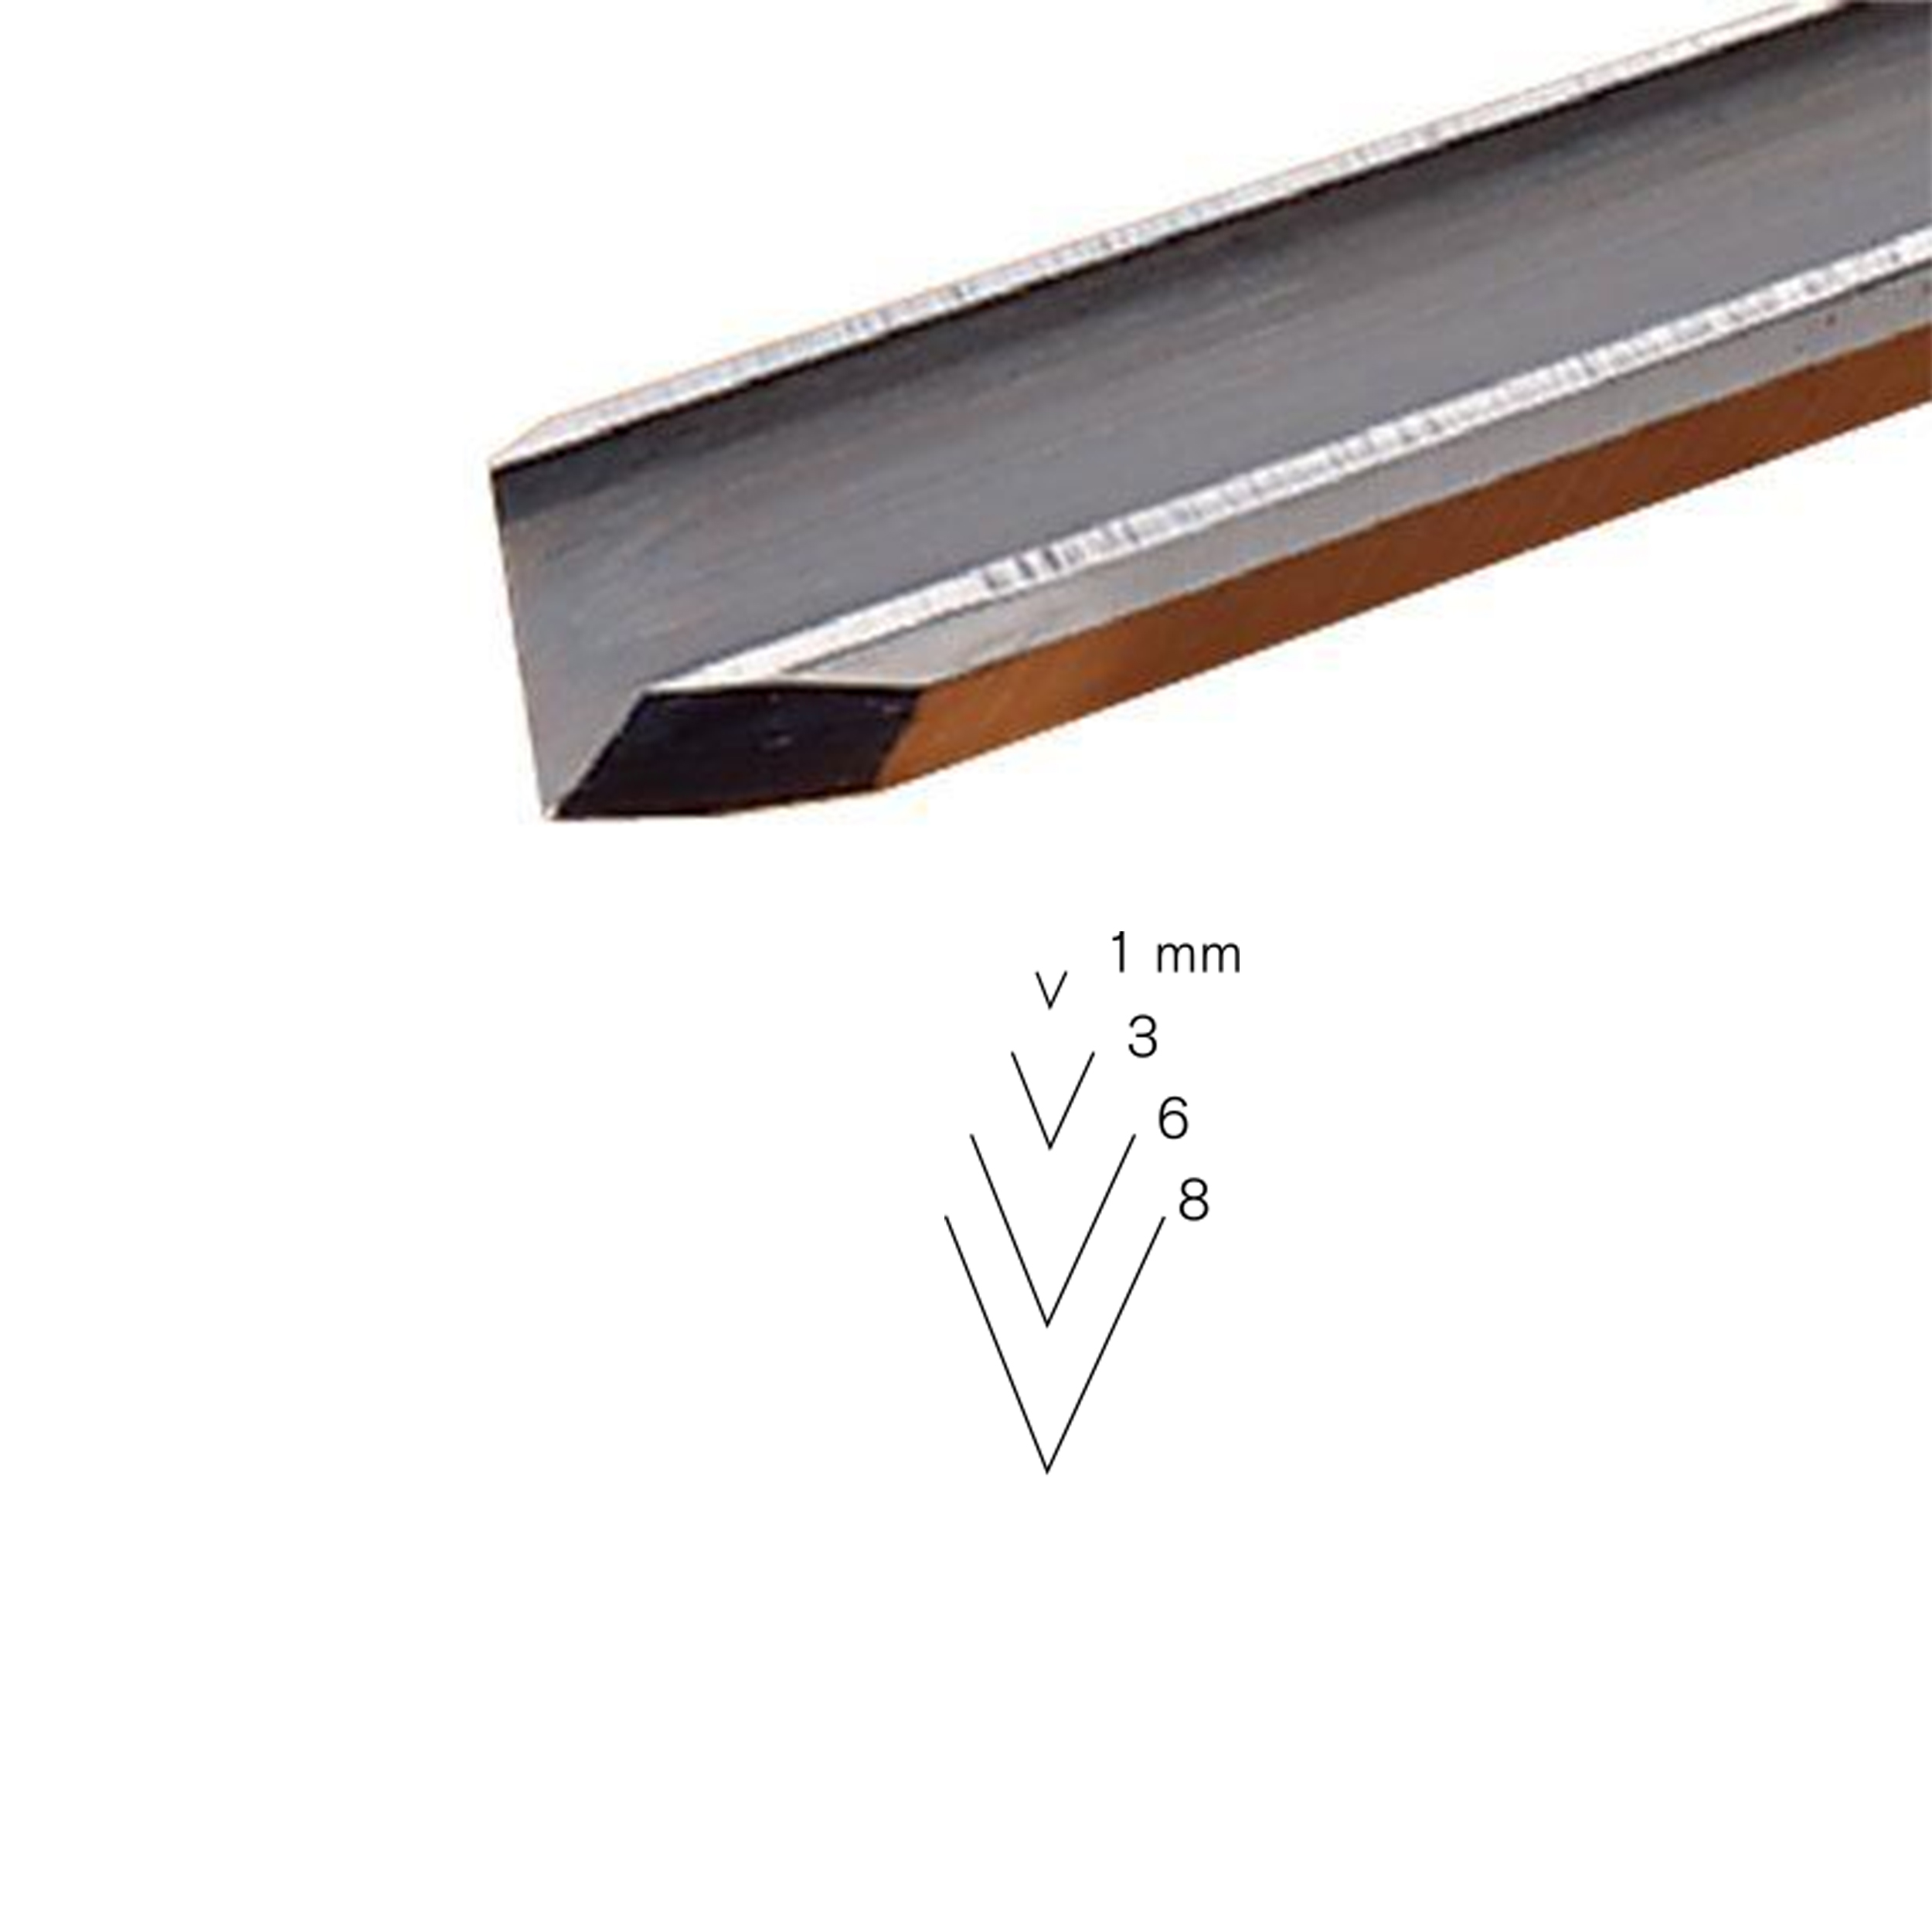 #15 Sweep V-Parting Tool, 3 mm, Full Size